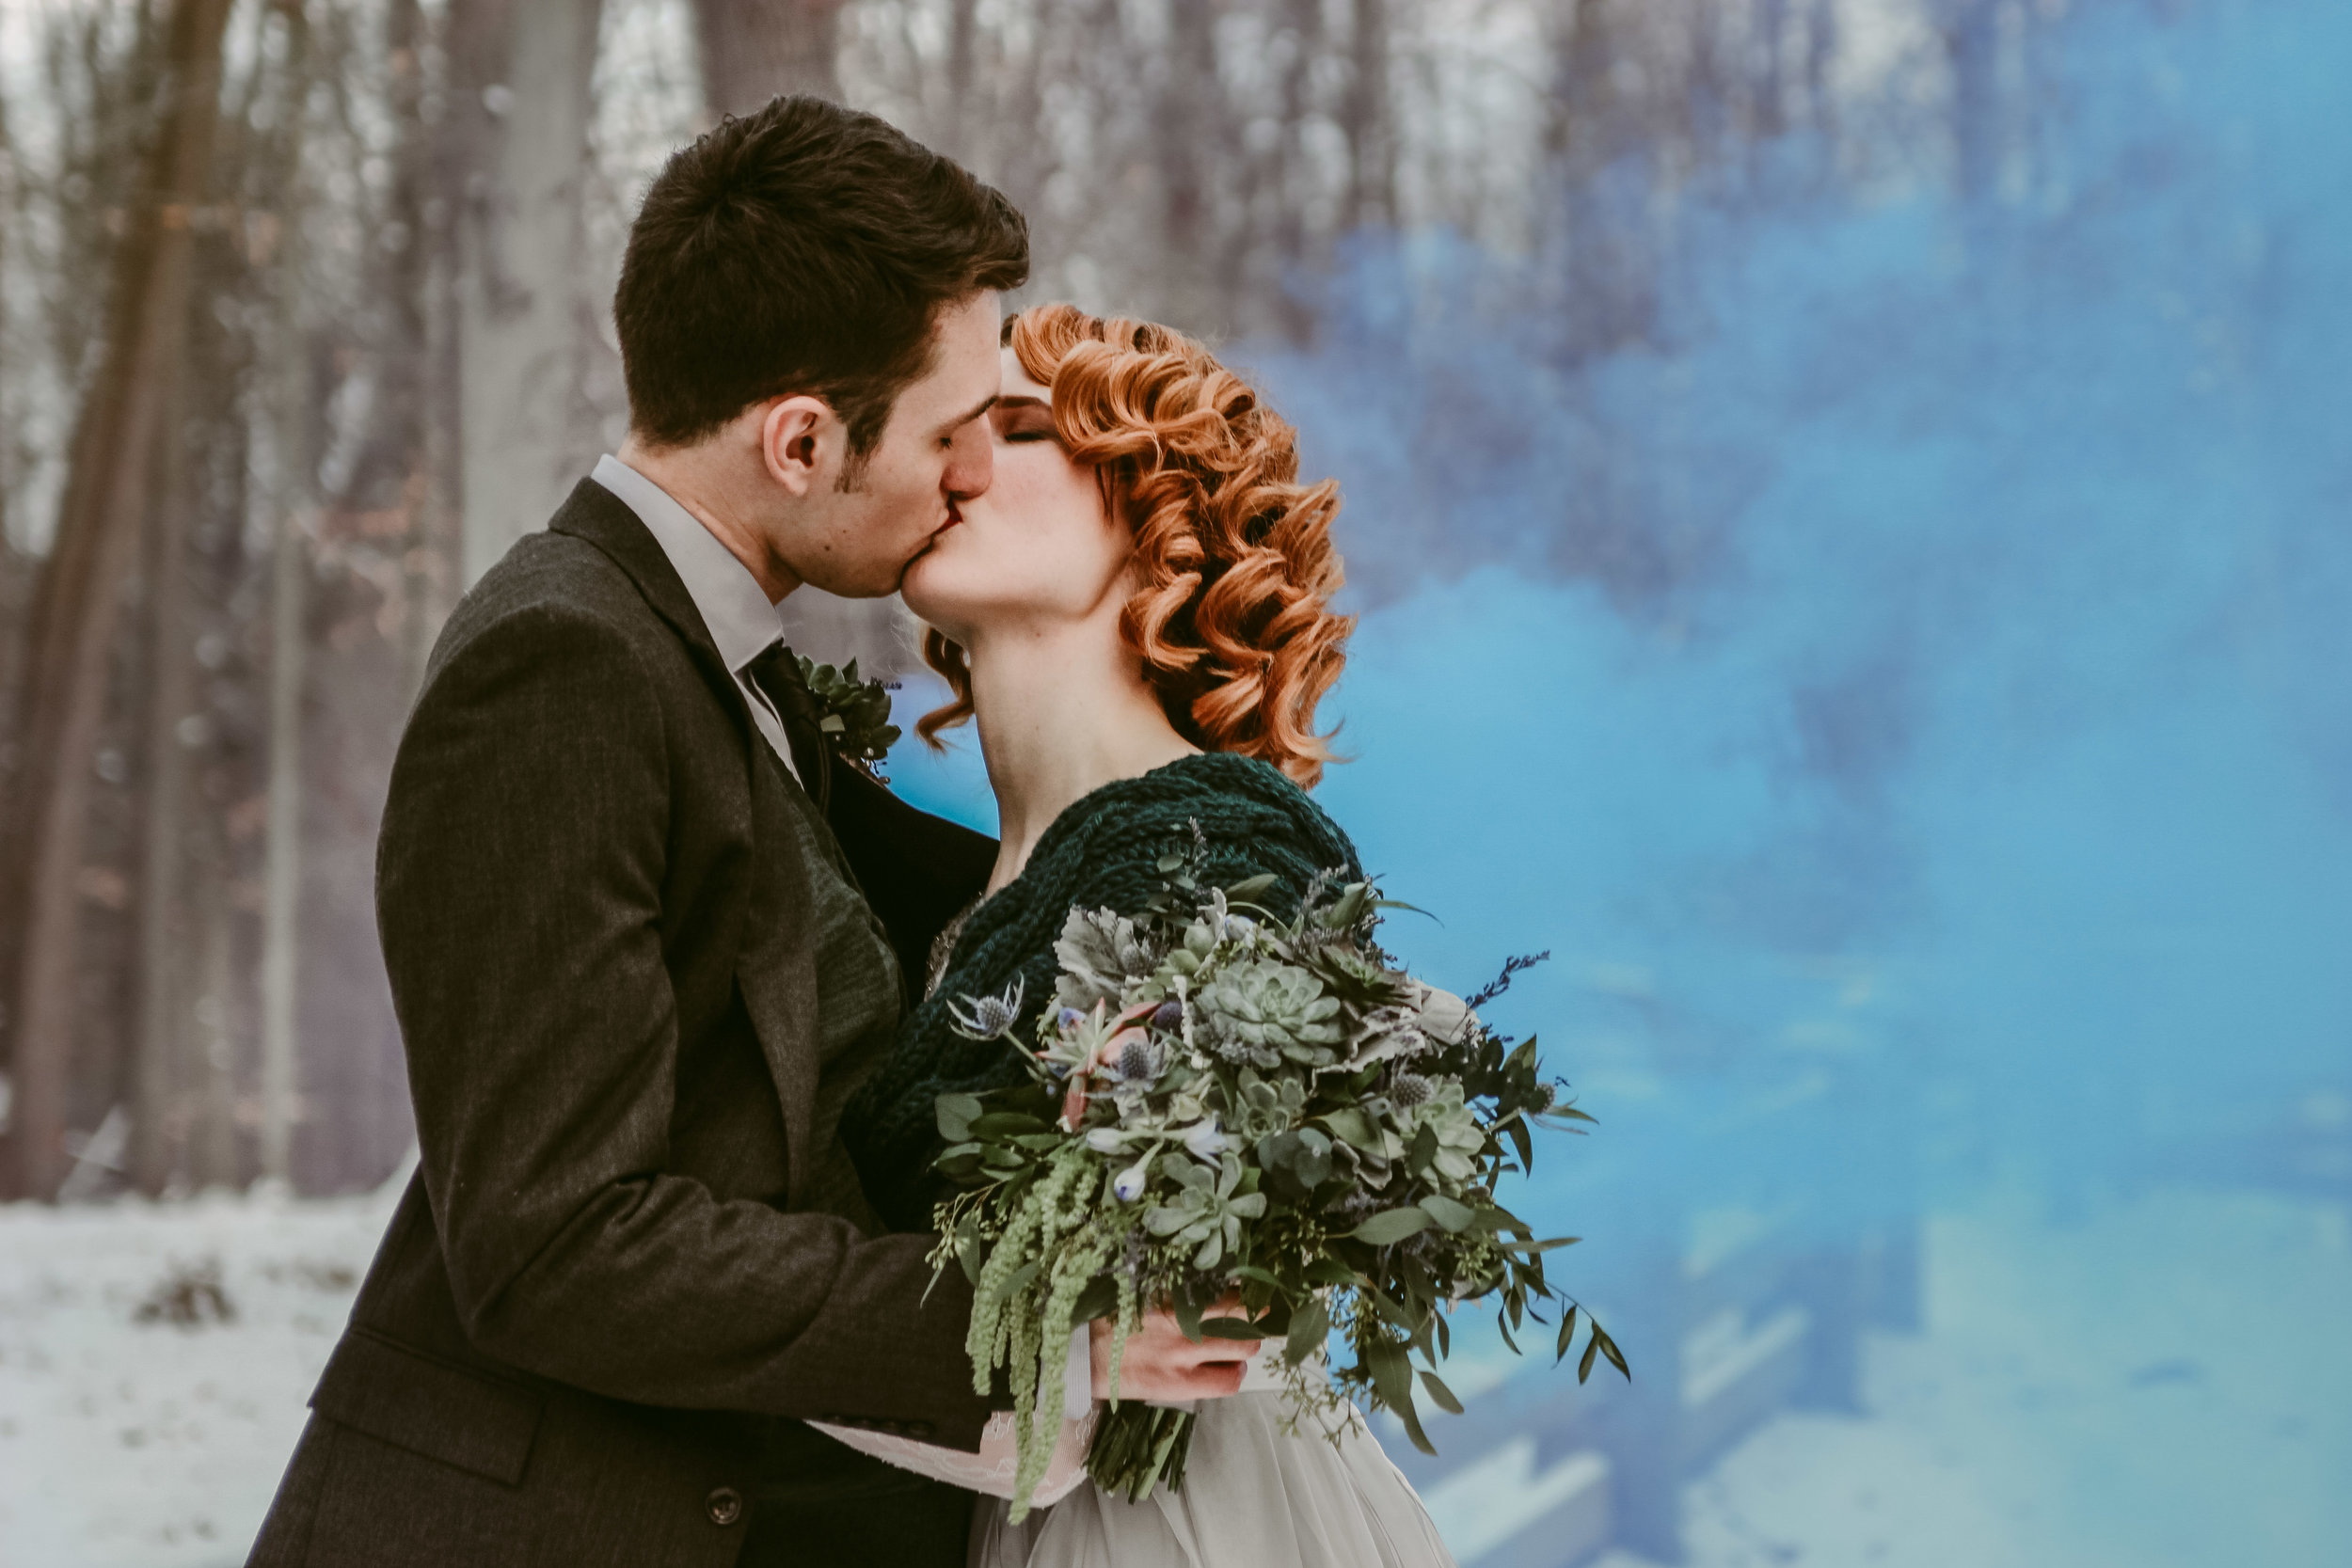 Where has been the coolest place you have done a photo shoot? - I photographed a wedding in Cuyahoga National Park a couple years ago….and that is still one of my favorite weddings and locations to date (it helps that they were also good friends of mine). It snowed the night before the wedding, so Cuyahoga looked like a winter wonderland. *heart eyes*